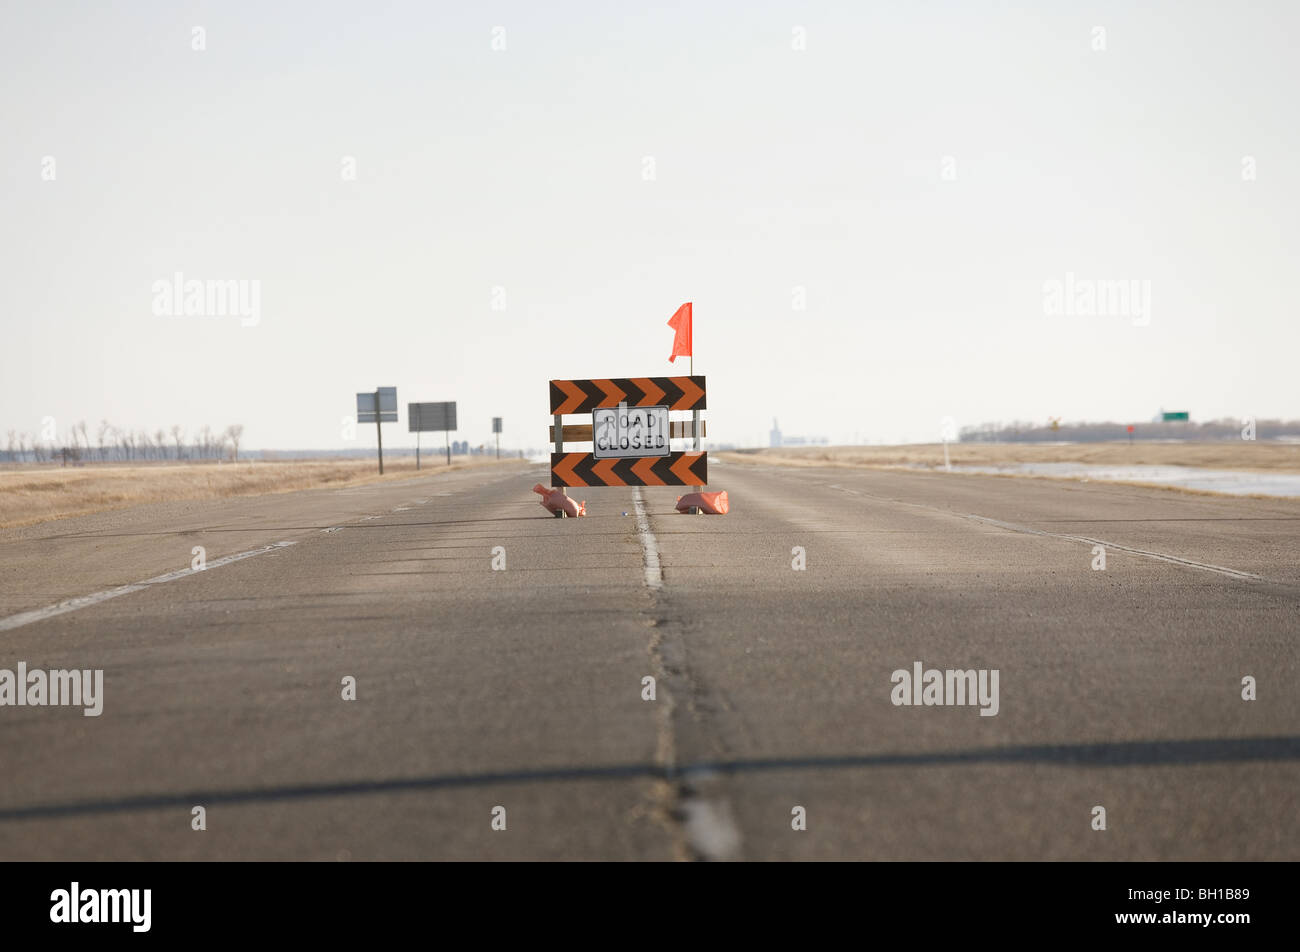 Road closed sign in middle of highway, due to Red River flooding, rural Manitoba, Canada - Stock Image